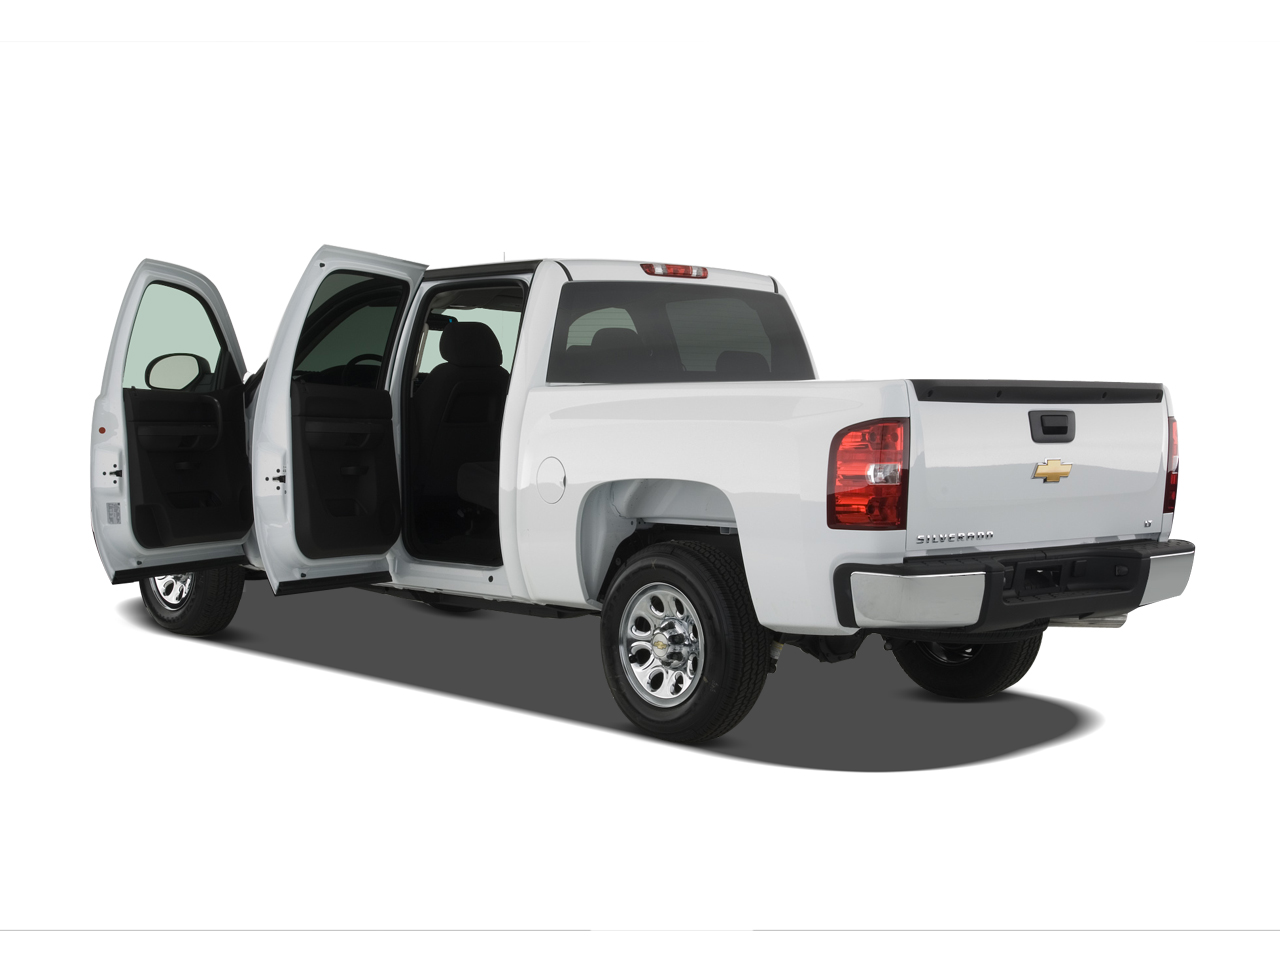 2007 chevrolet silverado and gmc sierra photos and details for 10 door truck